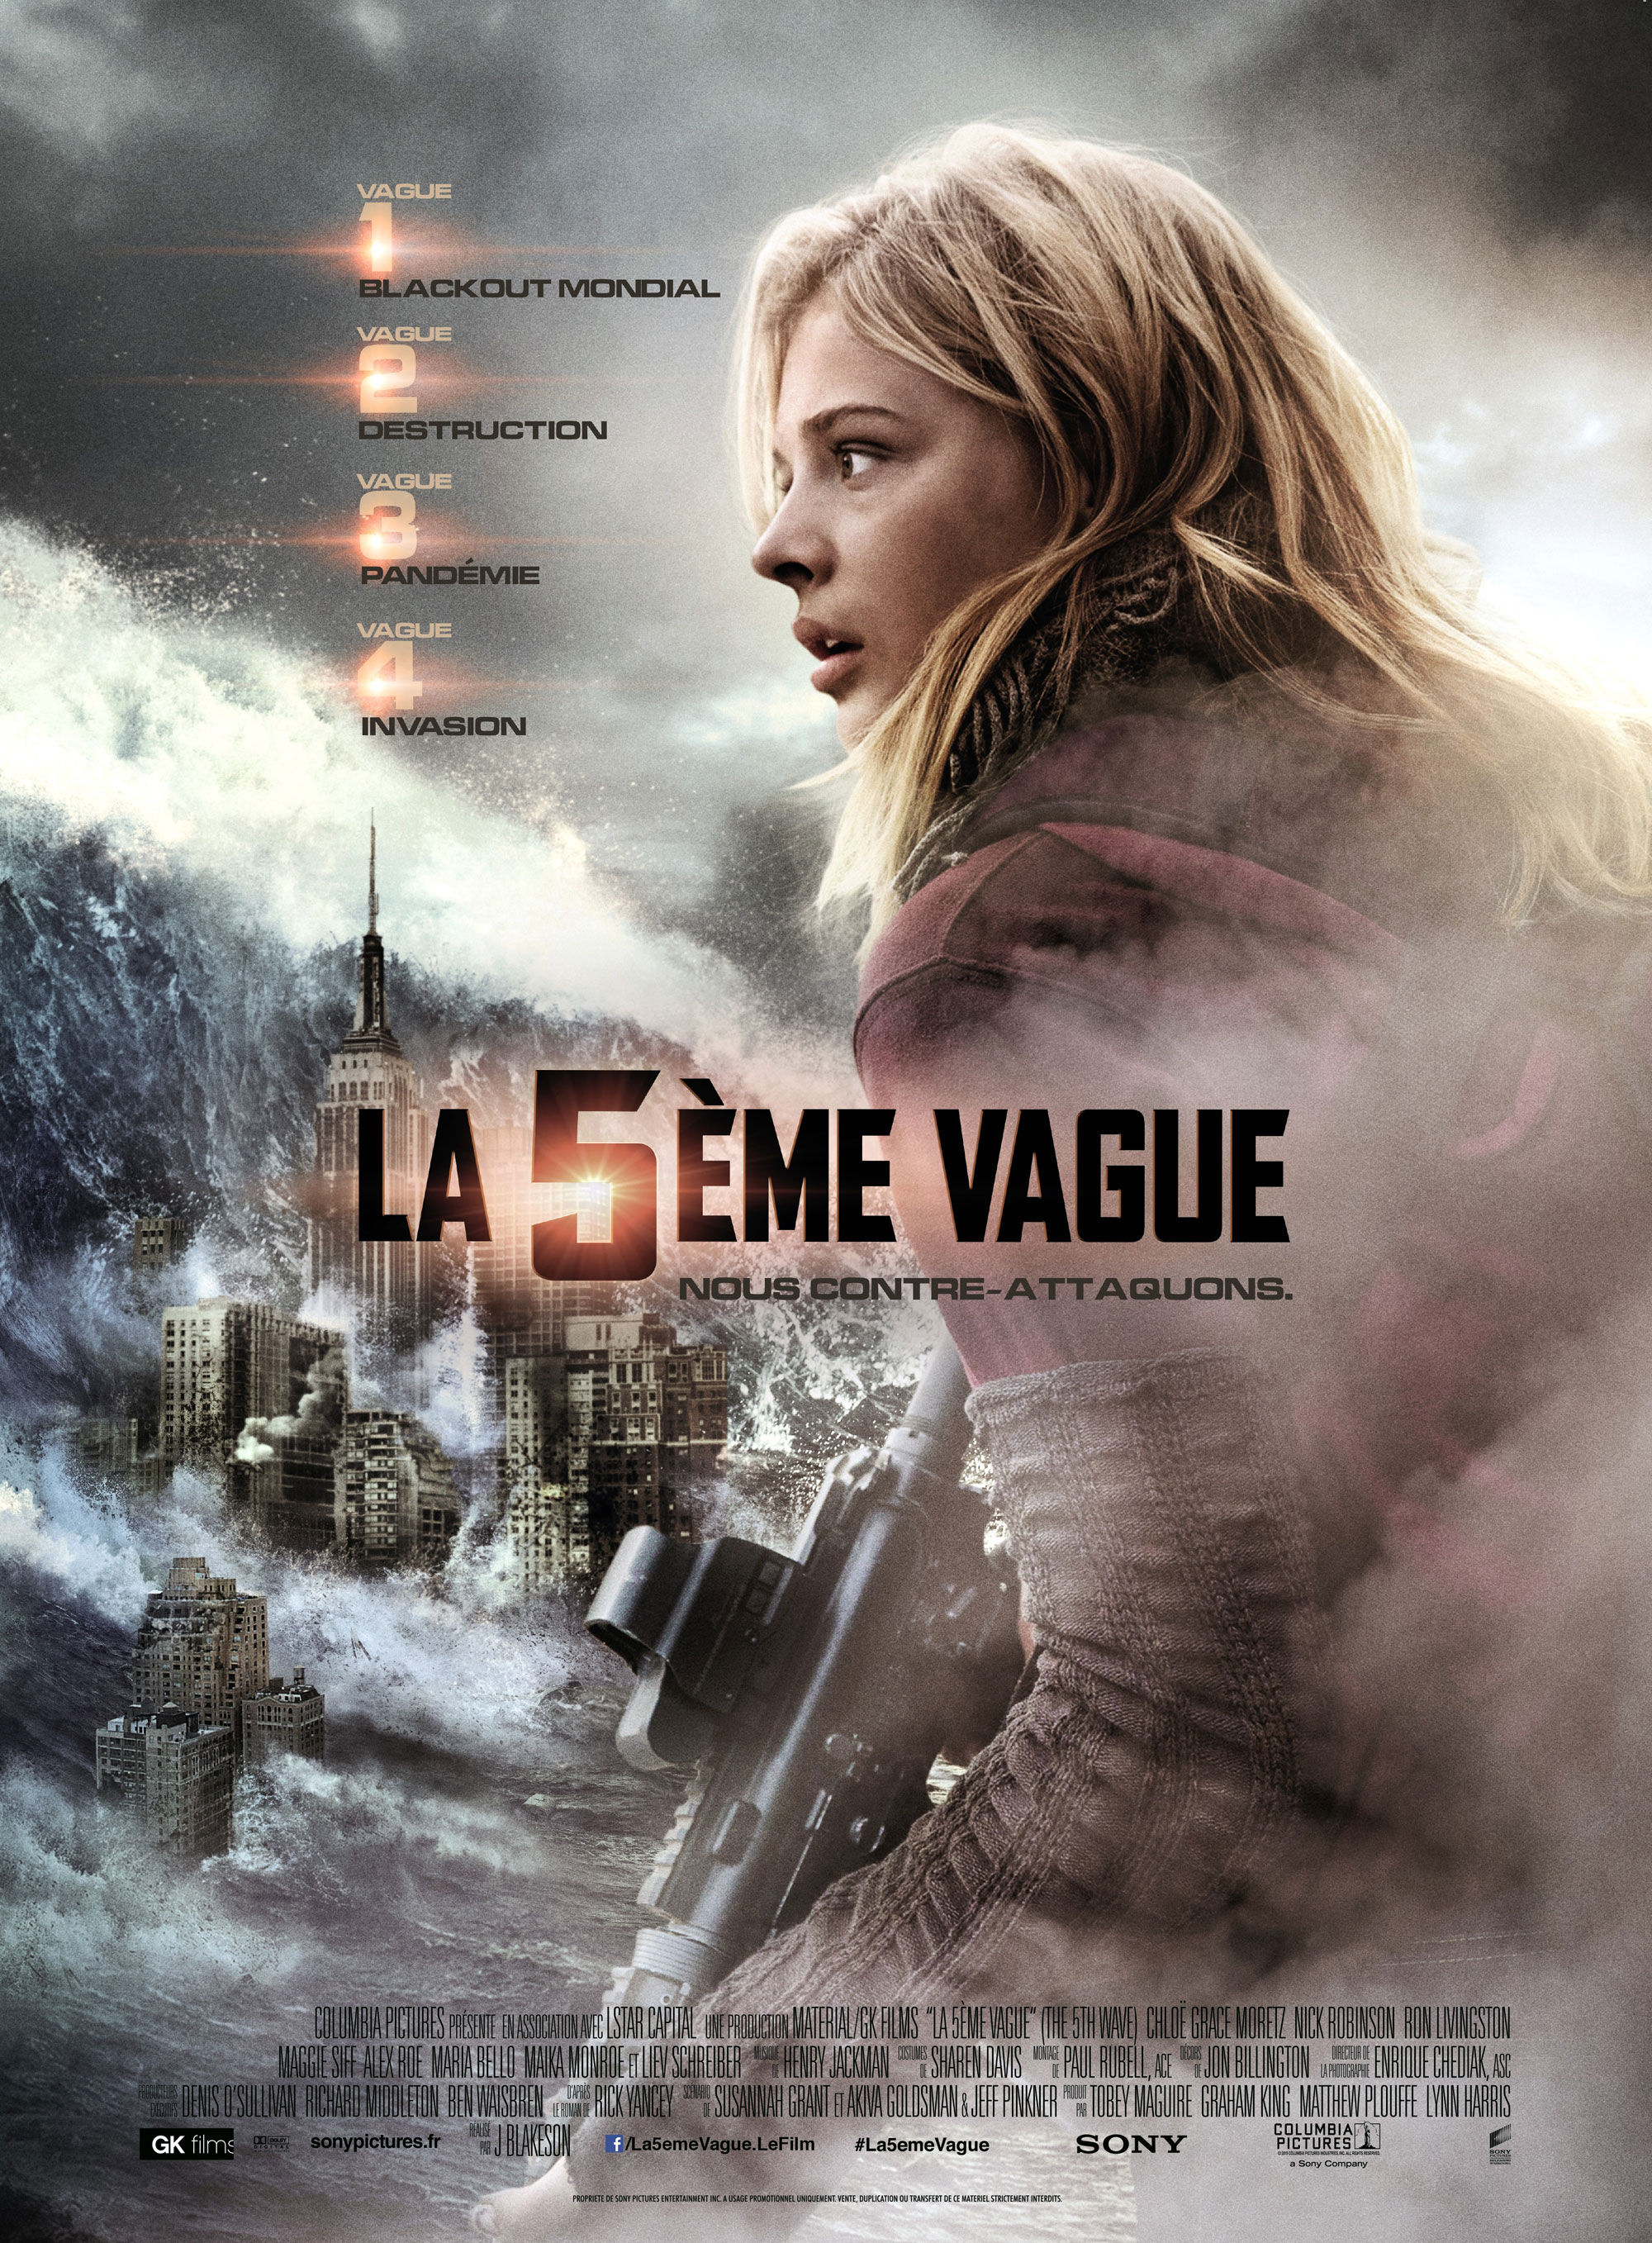 La 5ème vague - Affiche